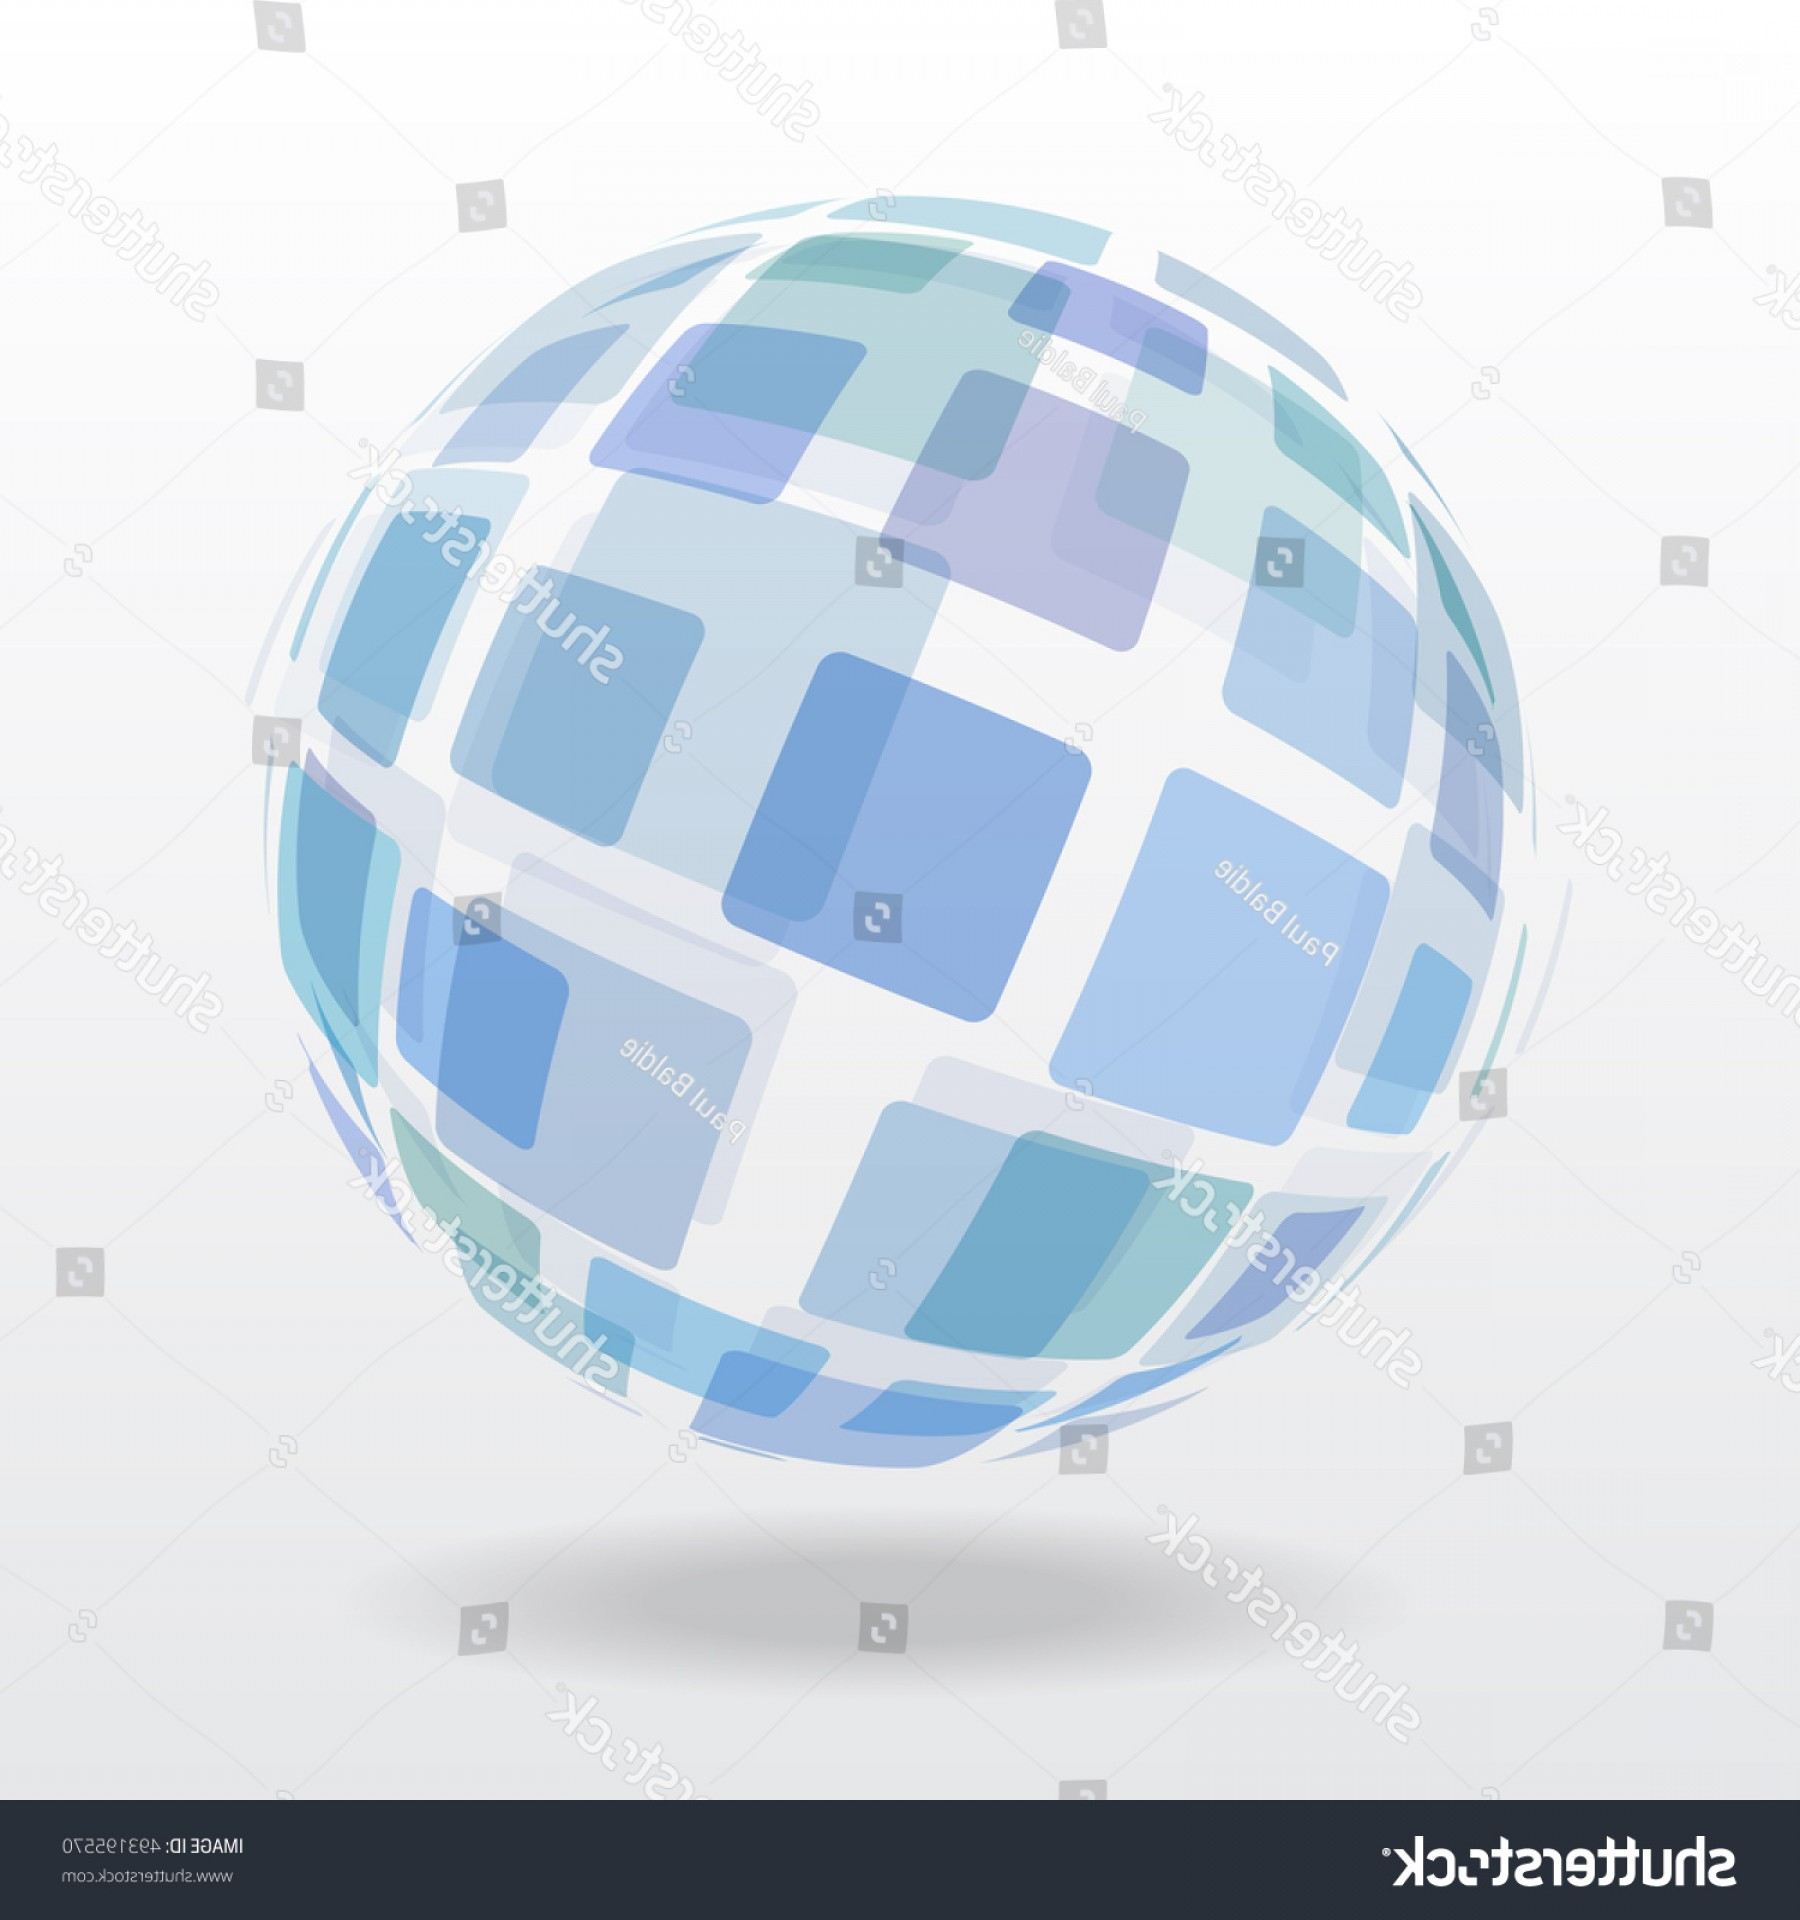 Abstract Vector Art Globe TV: Blue Abstract Globe Sphere Squares Shadow